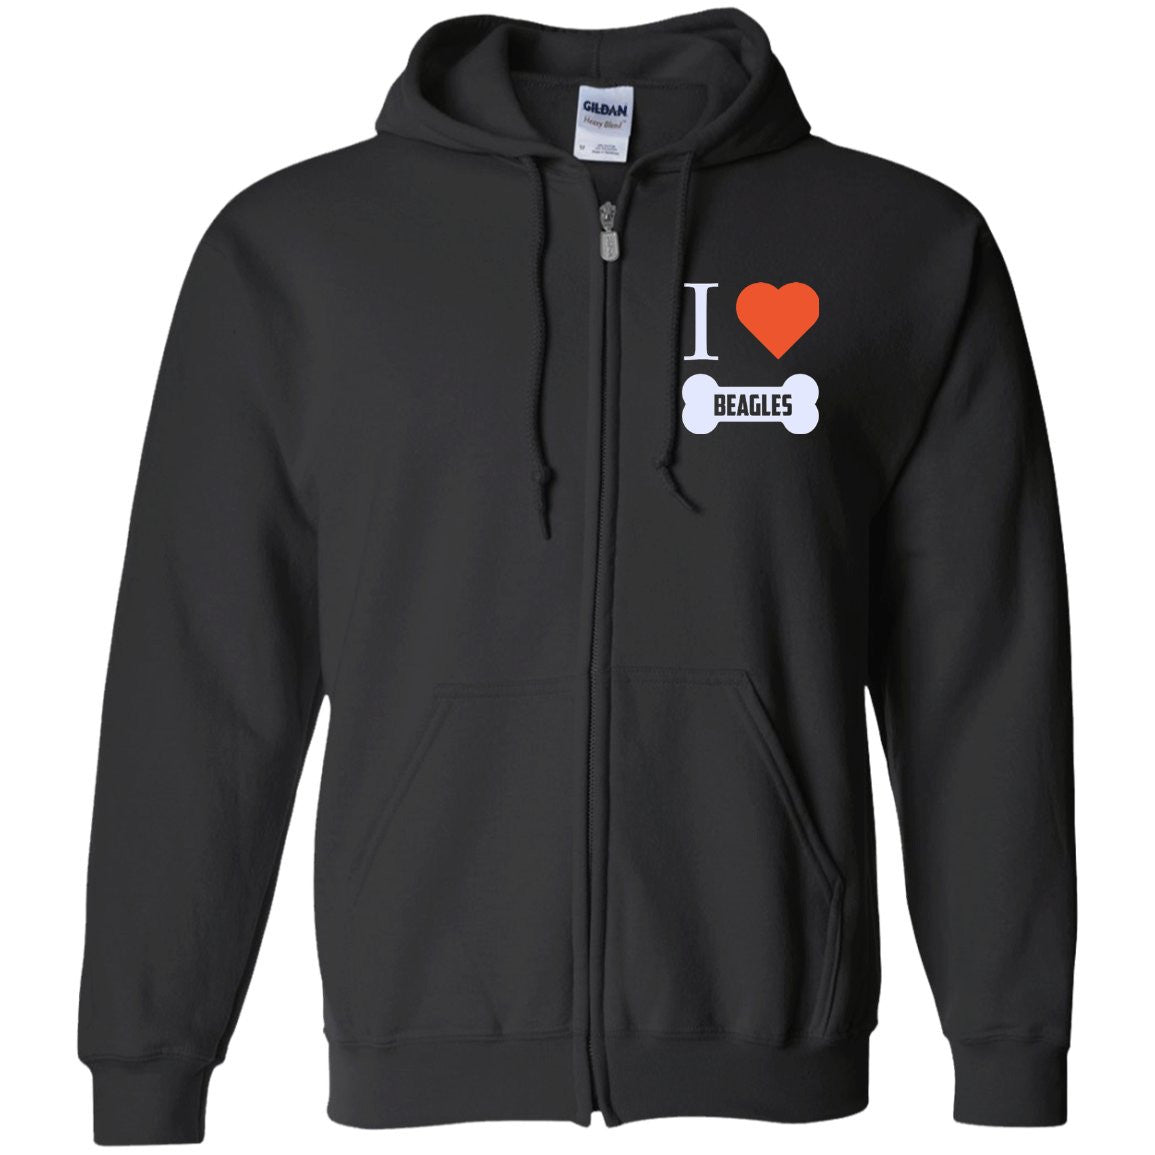 Beagle - I LOVE MY BEAGLE (BONE DESIGN) - Embroidered Zip Up Hooded Sweatshirt